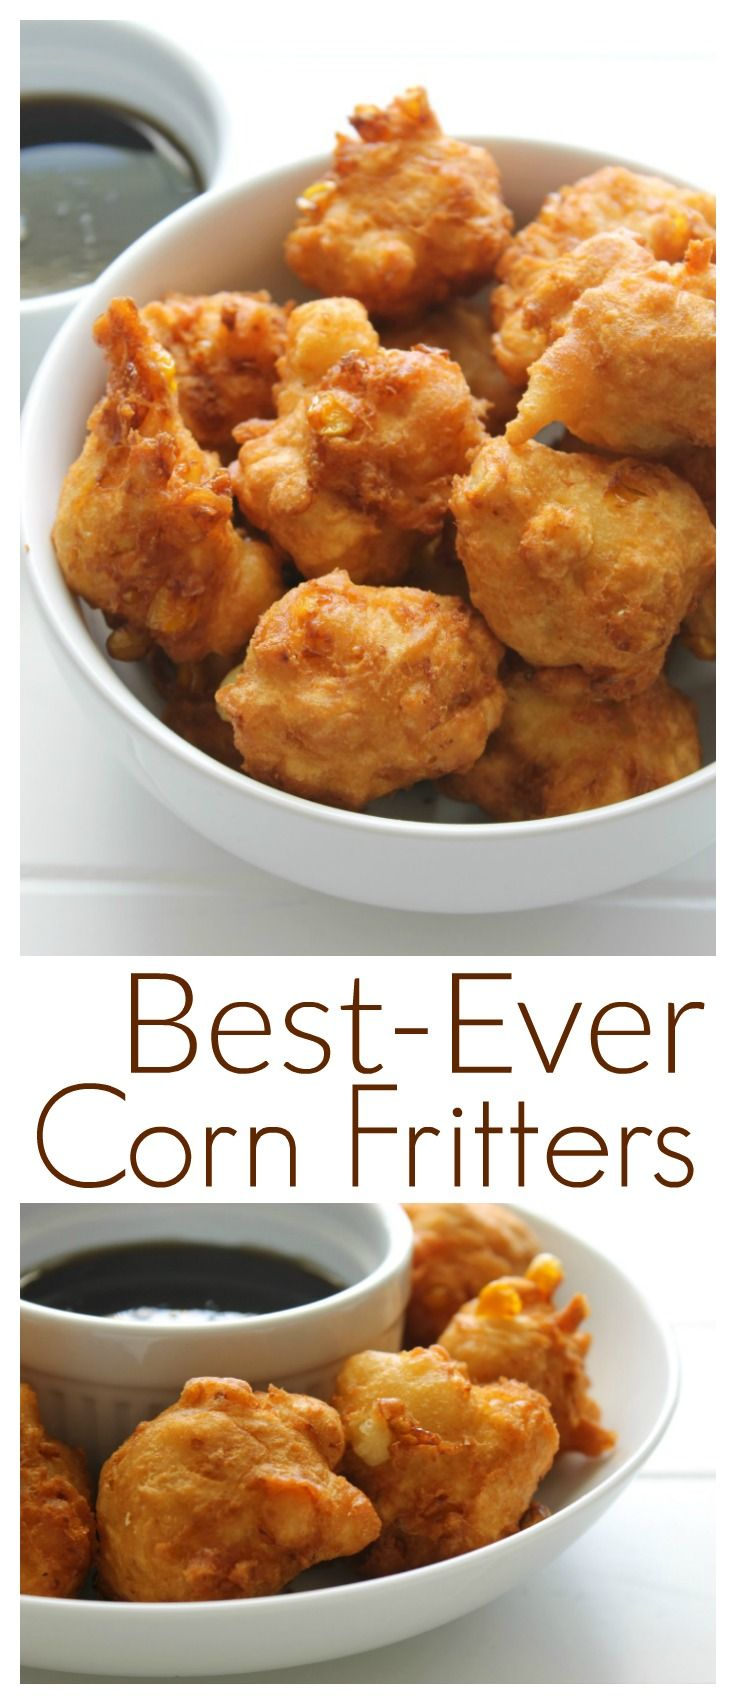 This is my Gram's Corn Fritters Recipe that she passed down to me, and they really are the best you'll ever have! Perfect bites of golden brown deliciousness, made extra yummy with a drizzle of maple  (Mix Vegetables Fritters)